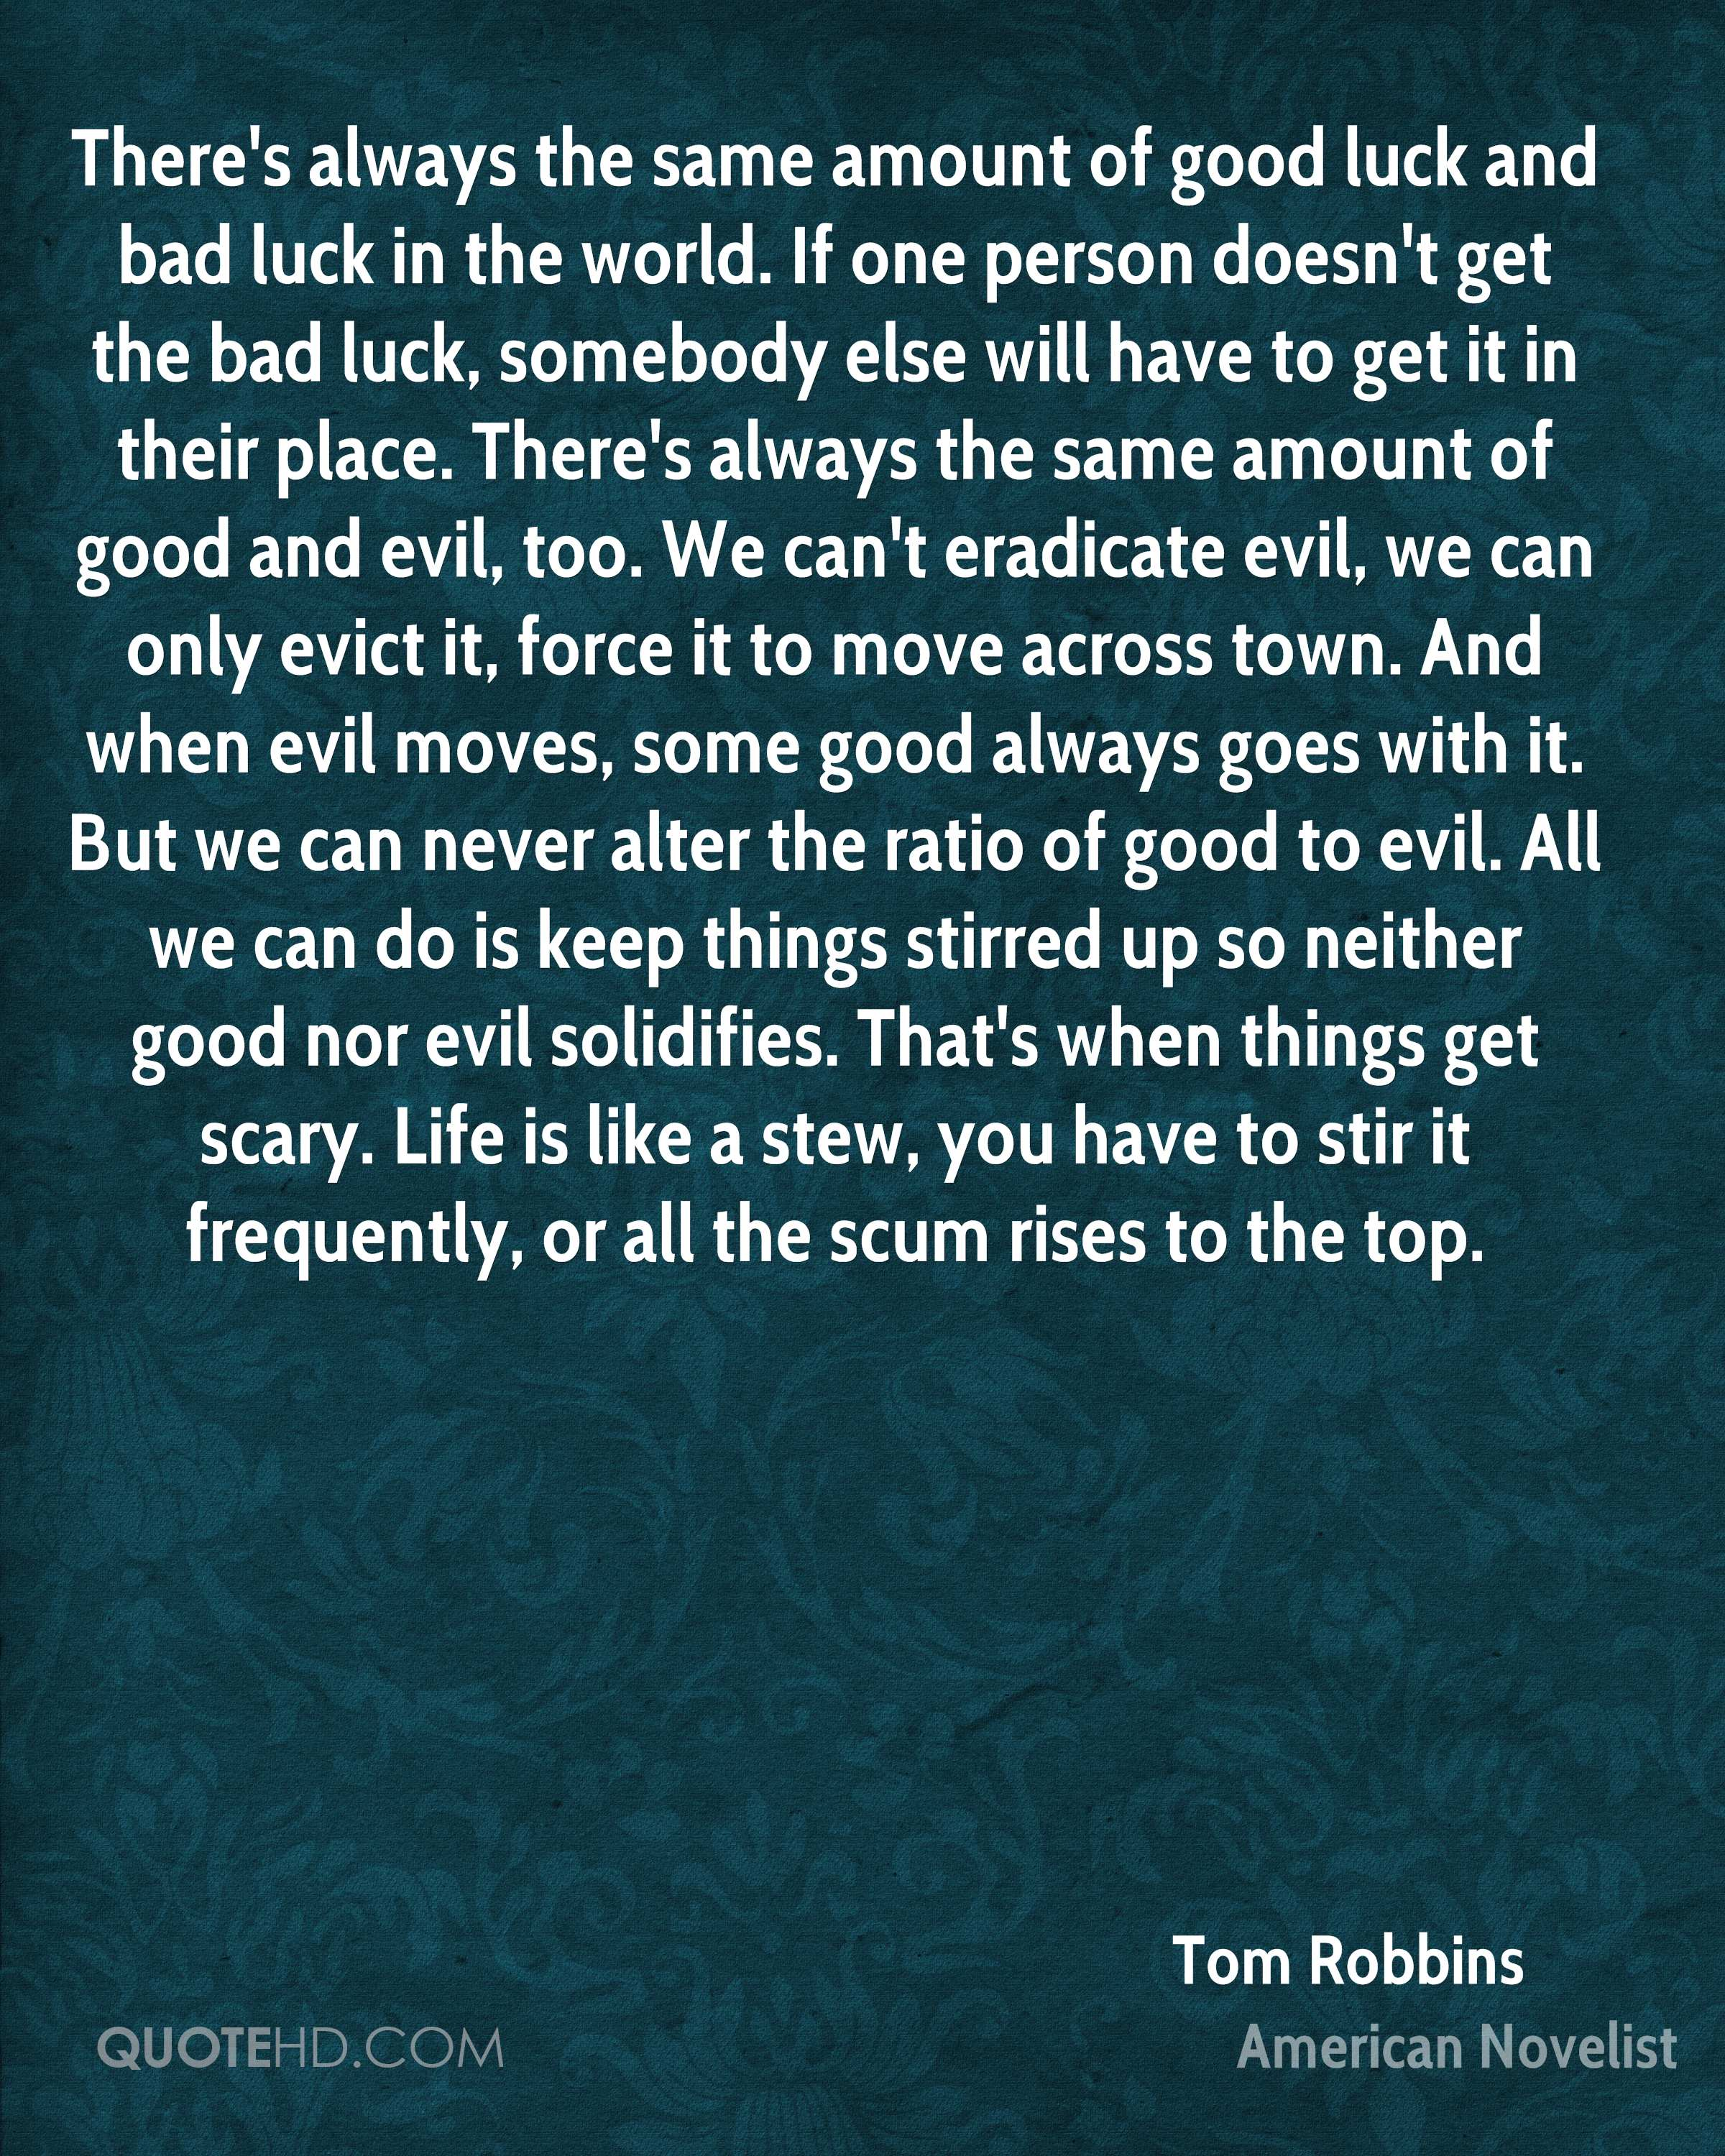 Tom Robbins Quotes Quotehd